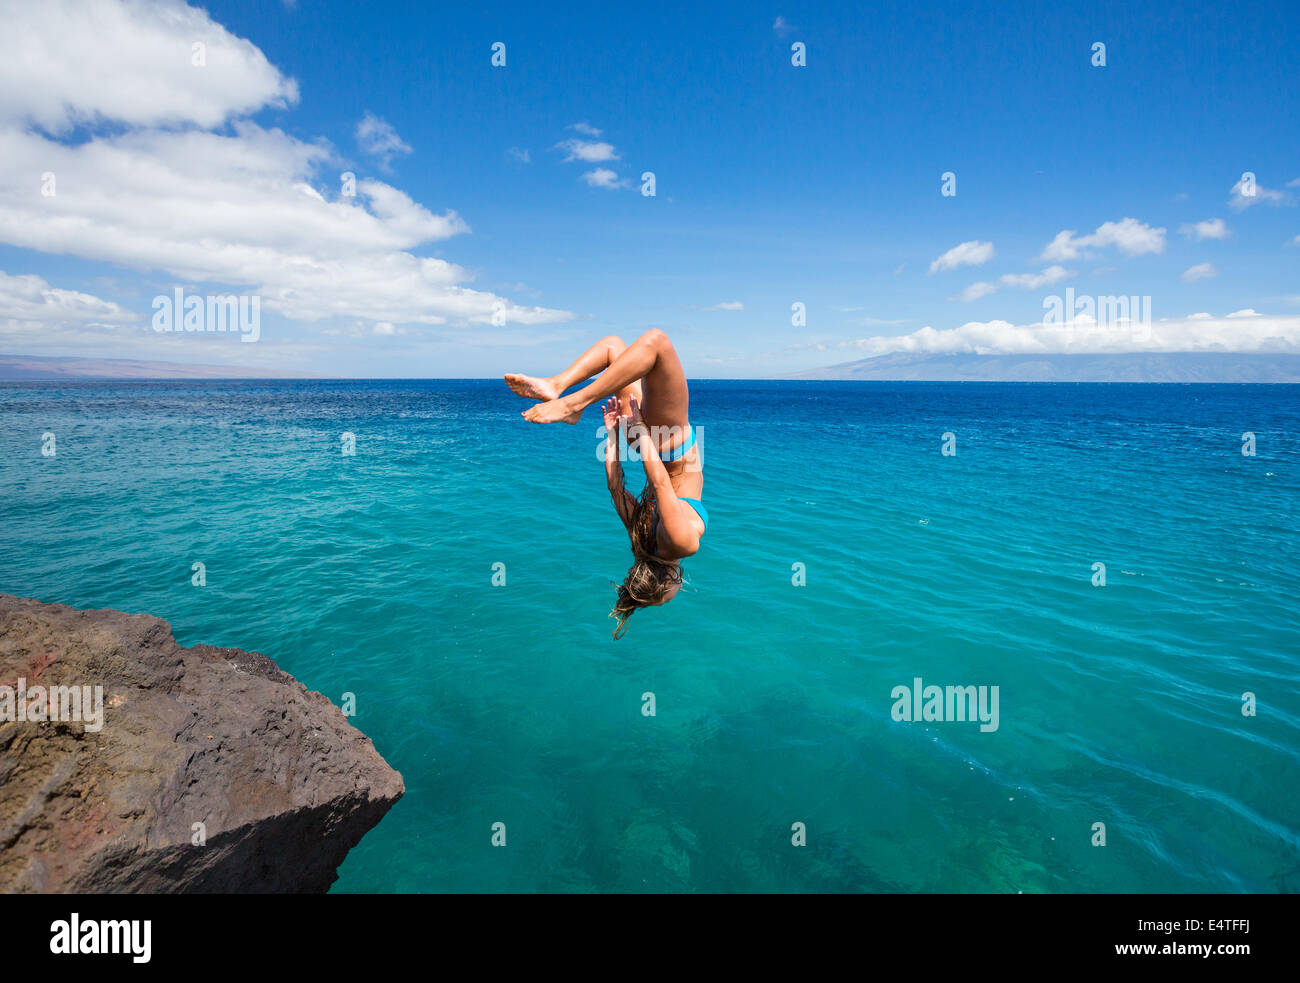 Woman doing backflip off cliff into the ocean. Summer fun lifestyle. - Stock Image